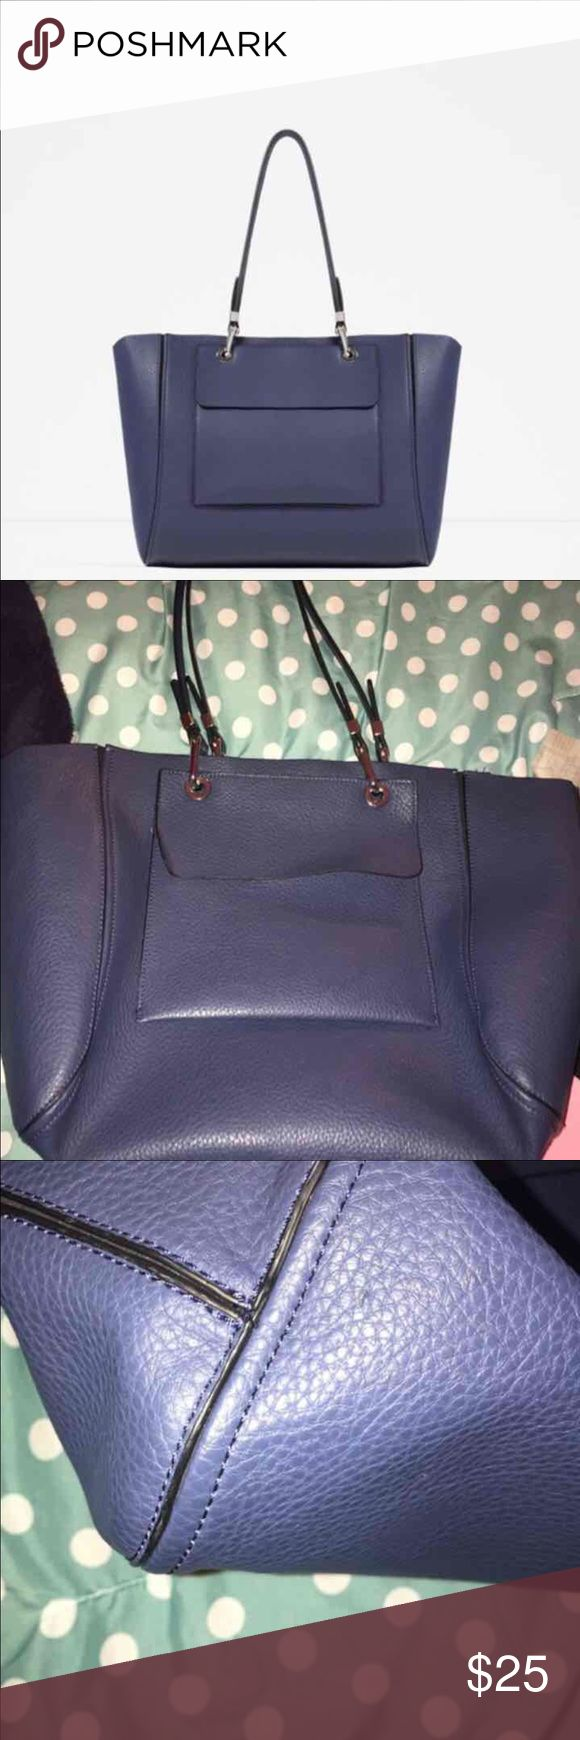 Zara tote bag In good condition  Will come with the Zara dust bag   Open to some offers Zara Bags Totes